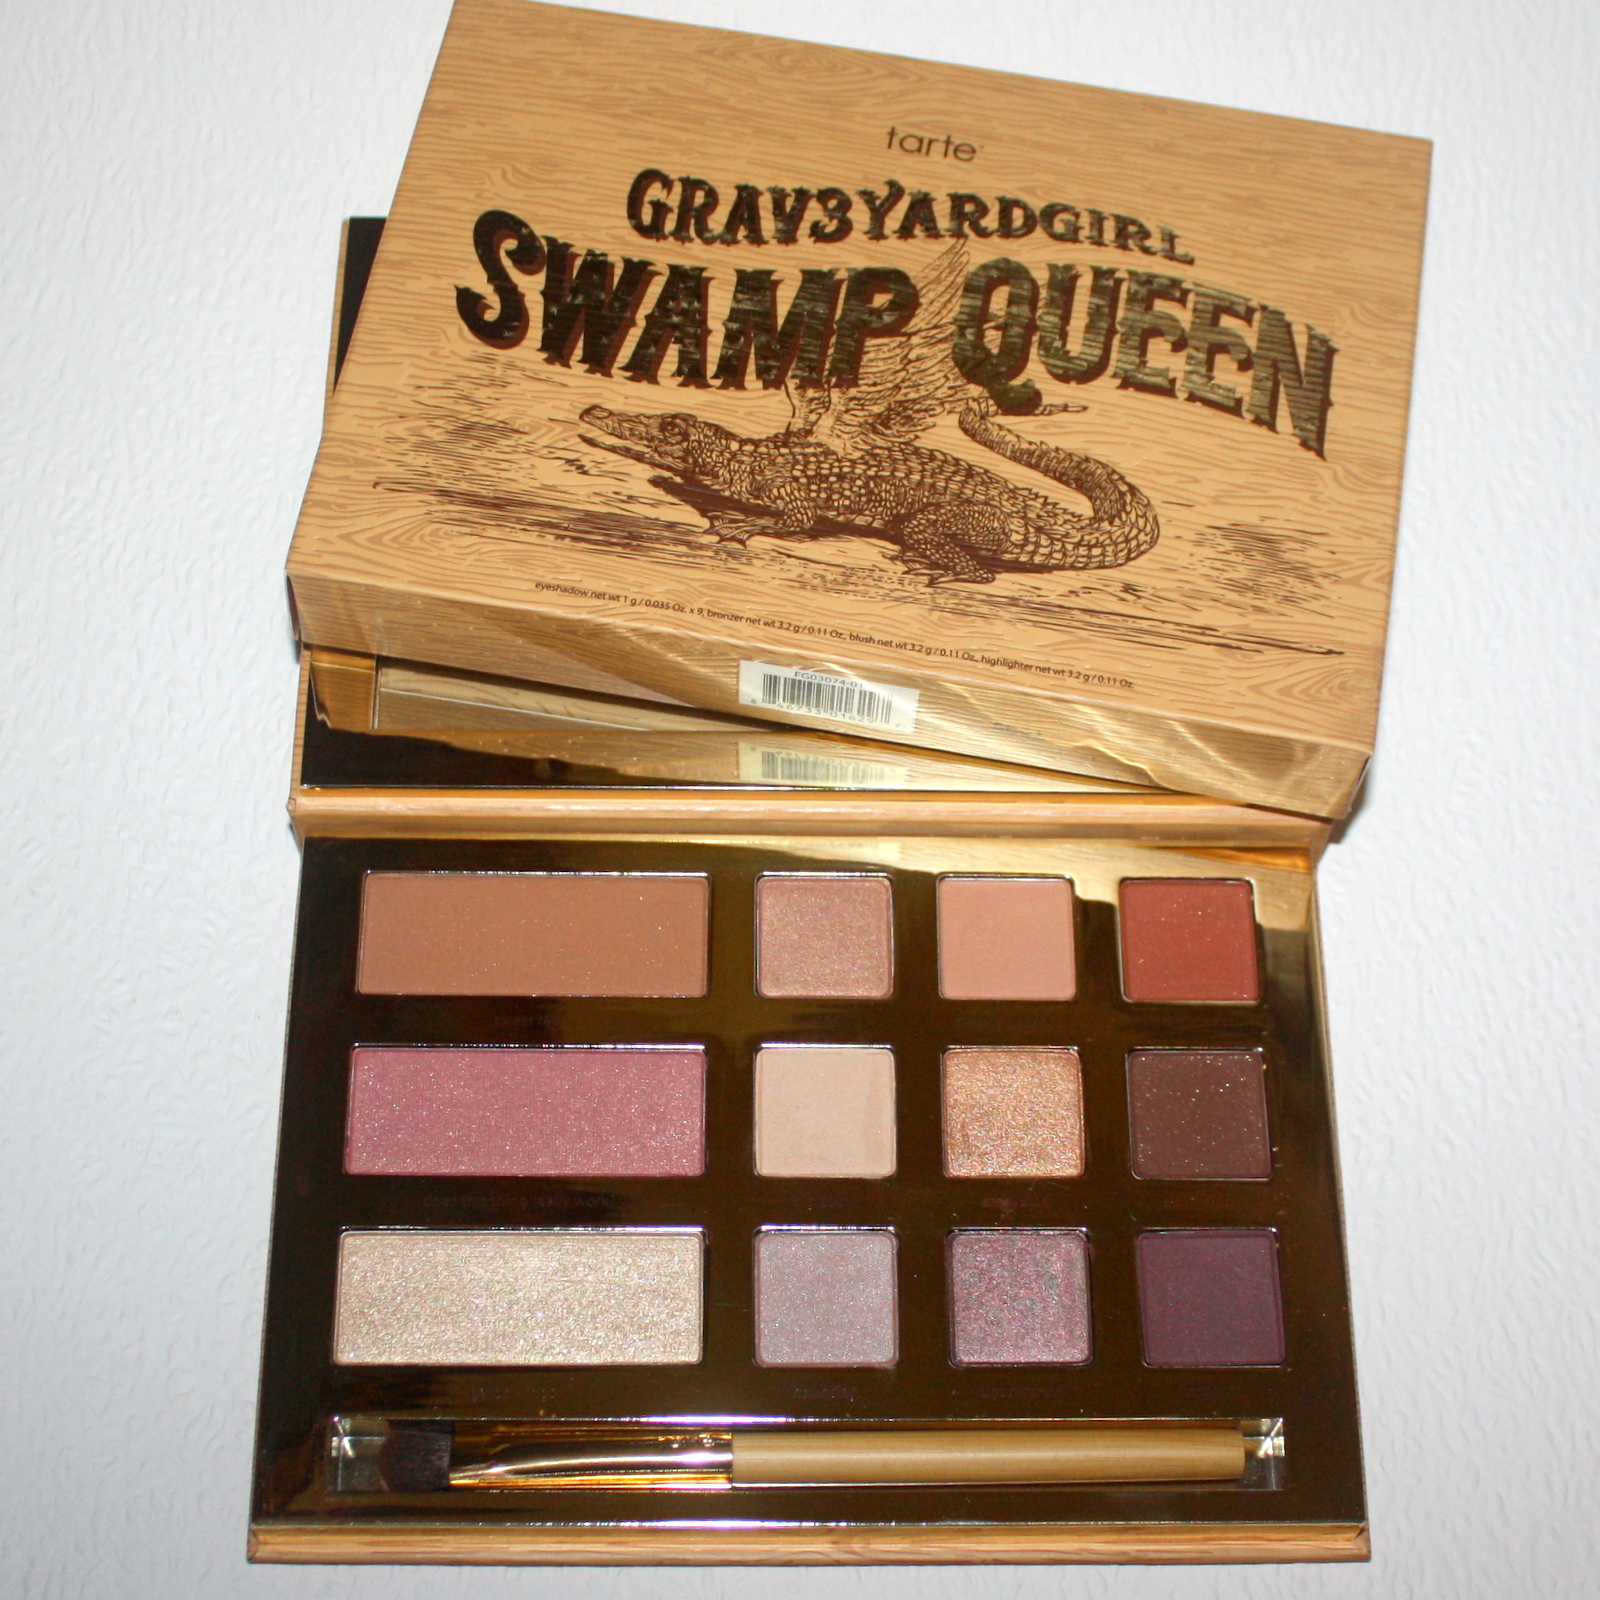 .Tarte Grav3yardgirl Swamp Queen Eye & Cheek paletta